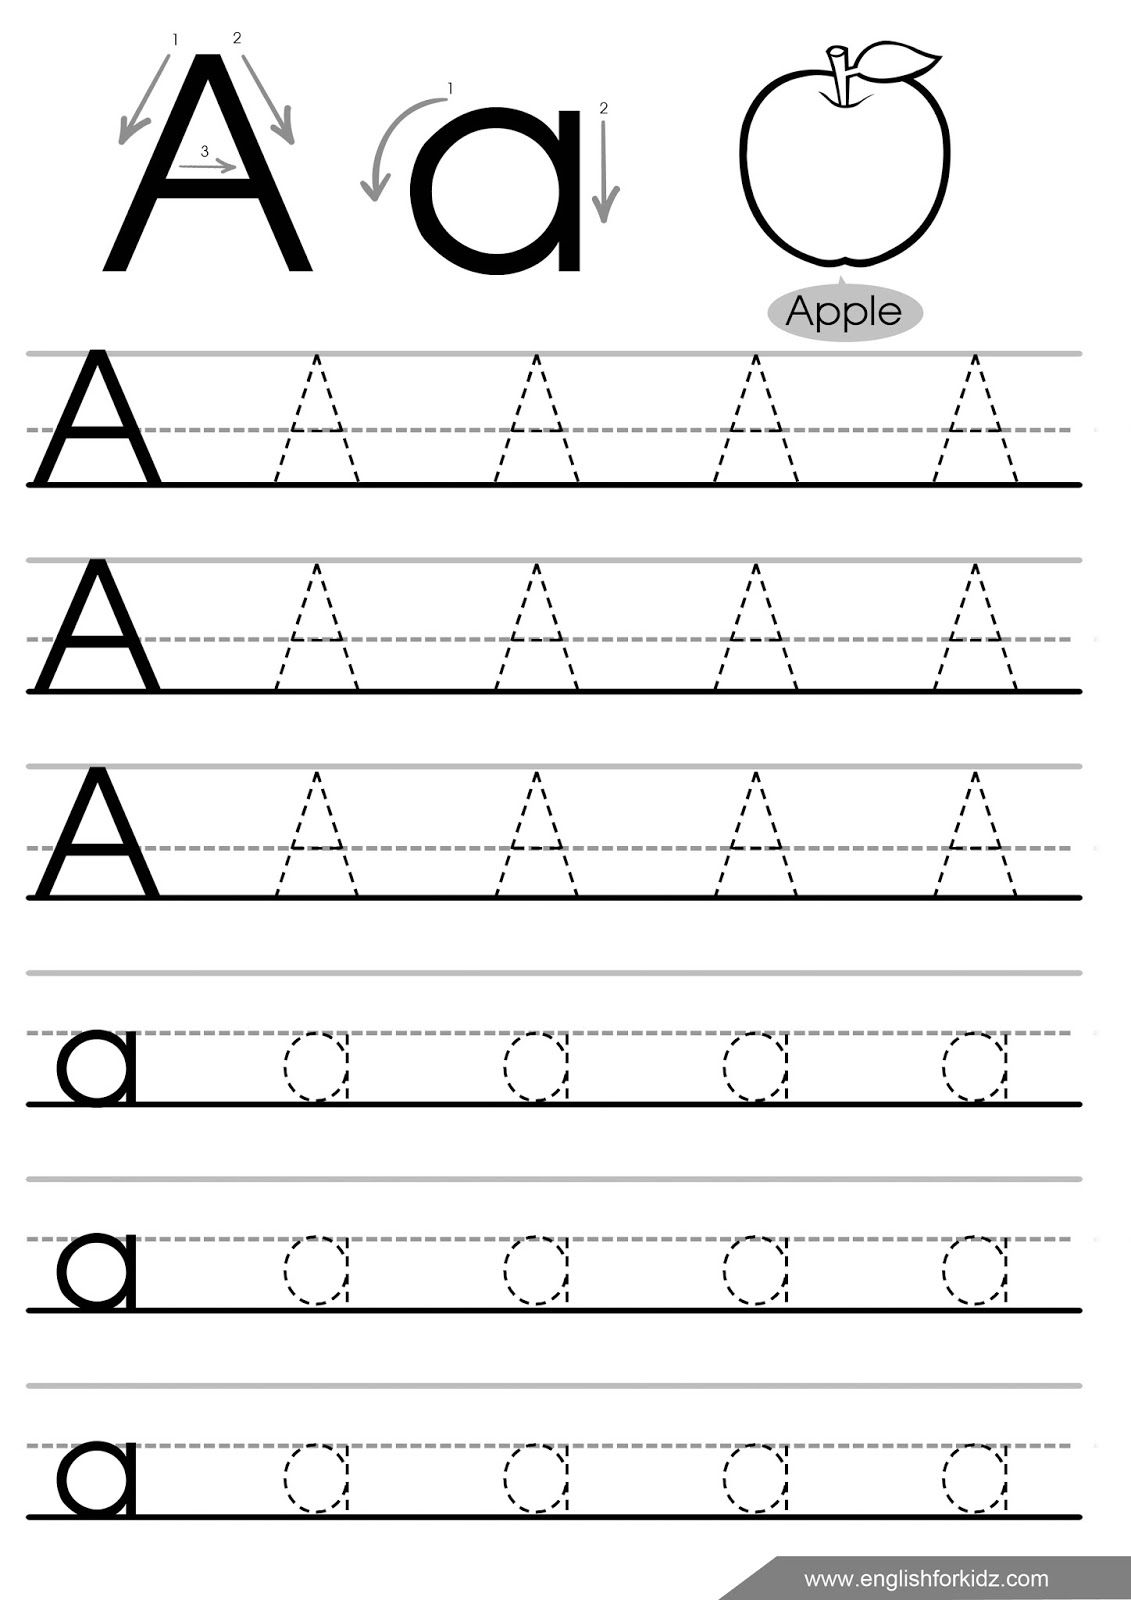 letter tracing worksheets letter tracing worksheets. Black Bedroom Furniture Sets. Home Design Ideas